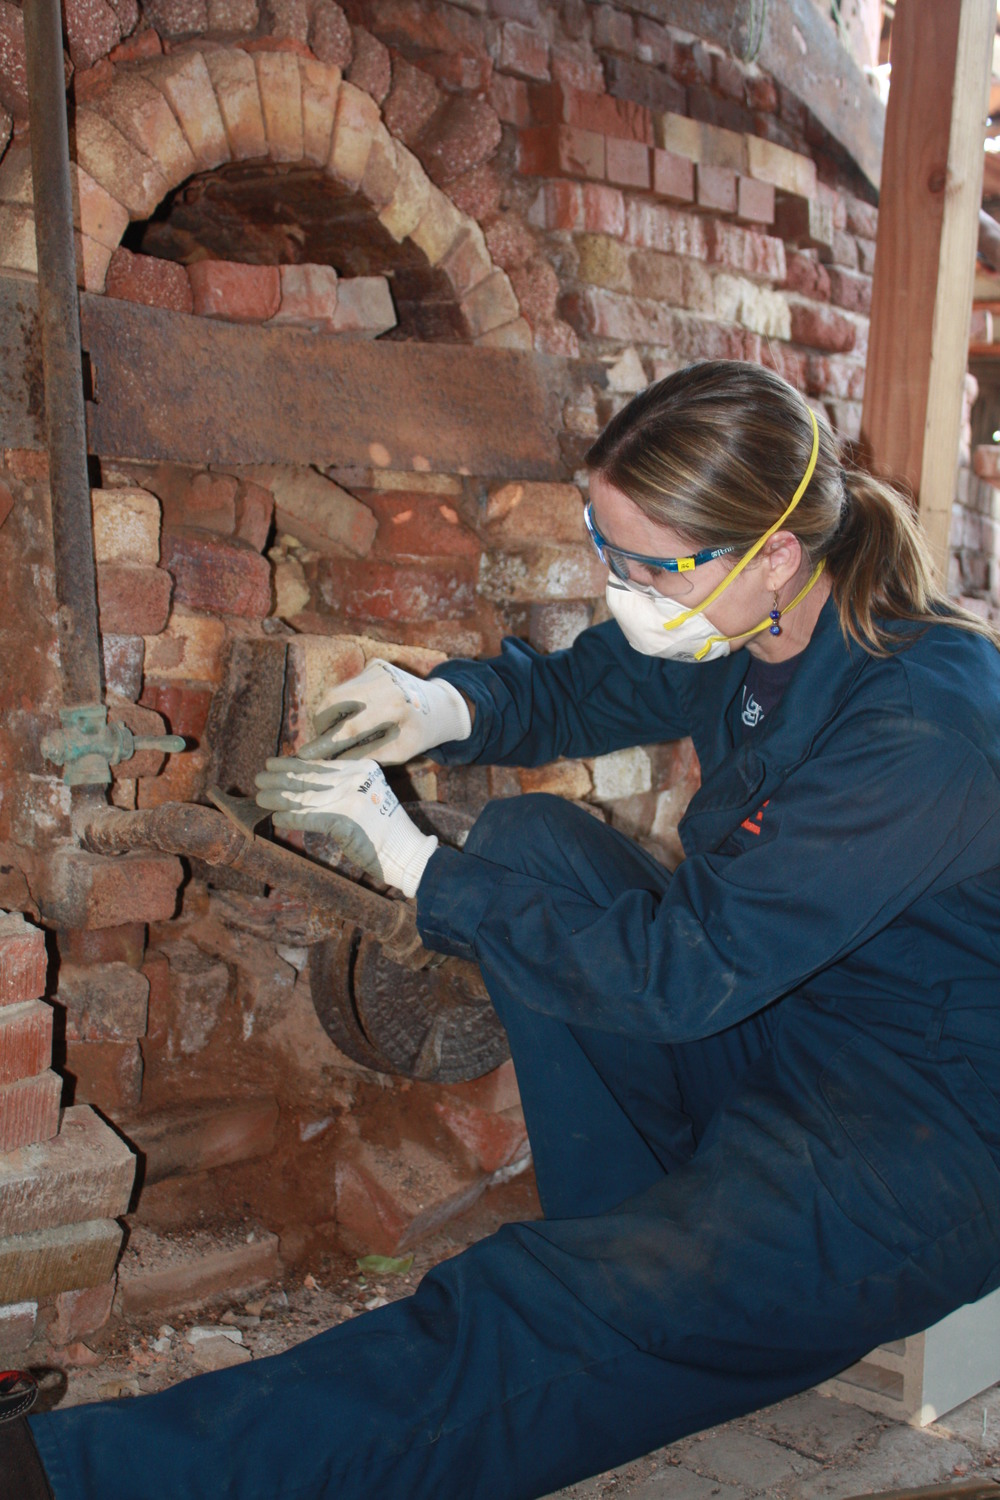 Claudia Chemello cleans iron elements in Kiln 7 to stabilize deterioration.